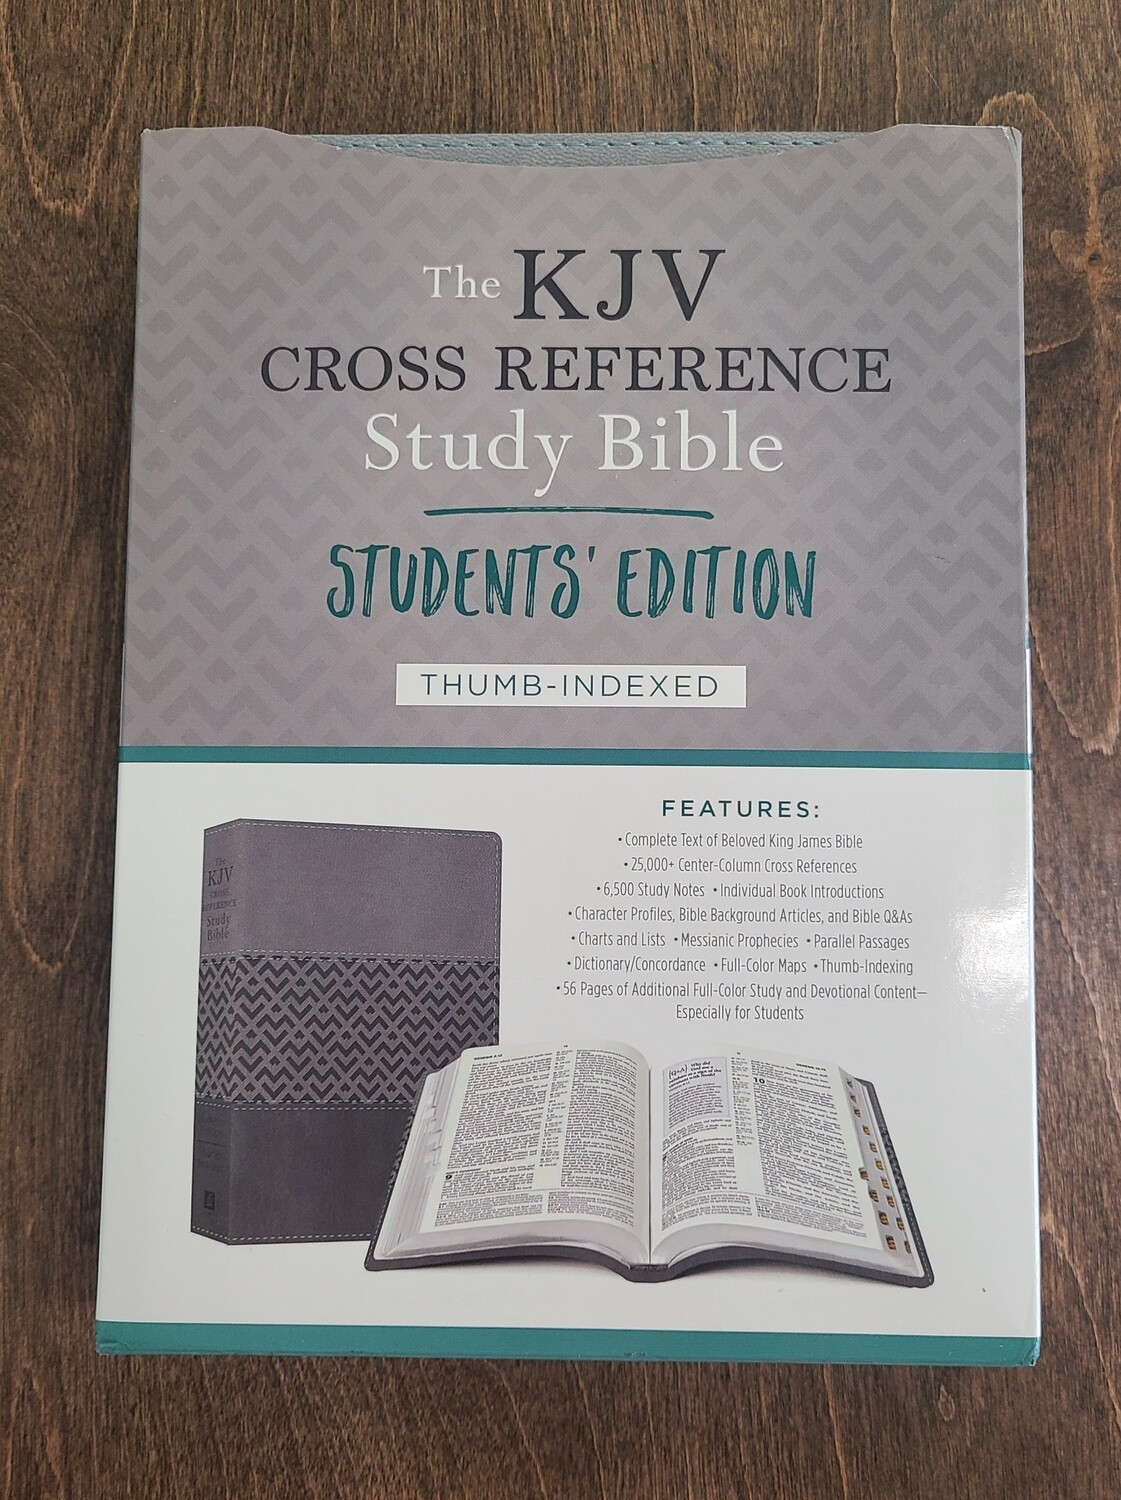 KJV Cross Reference Study Bible - Students Edition - Charcoal Thumb-Indexed